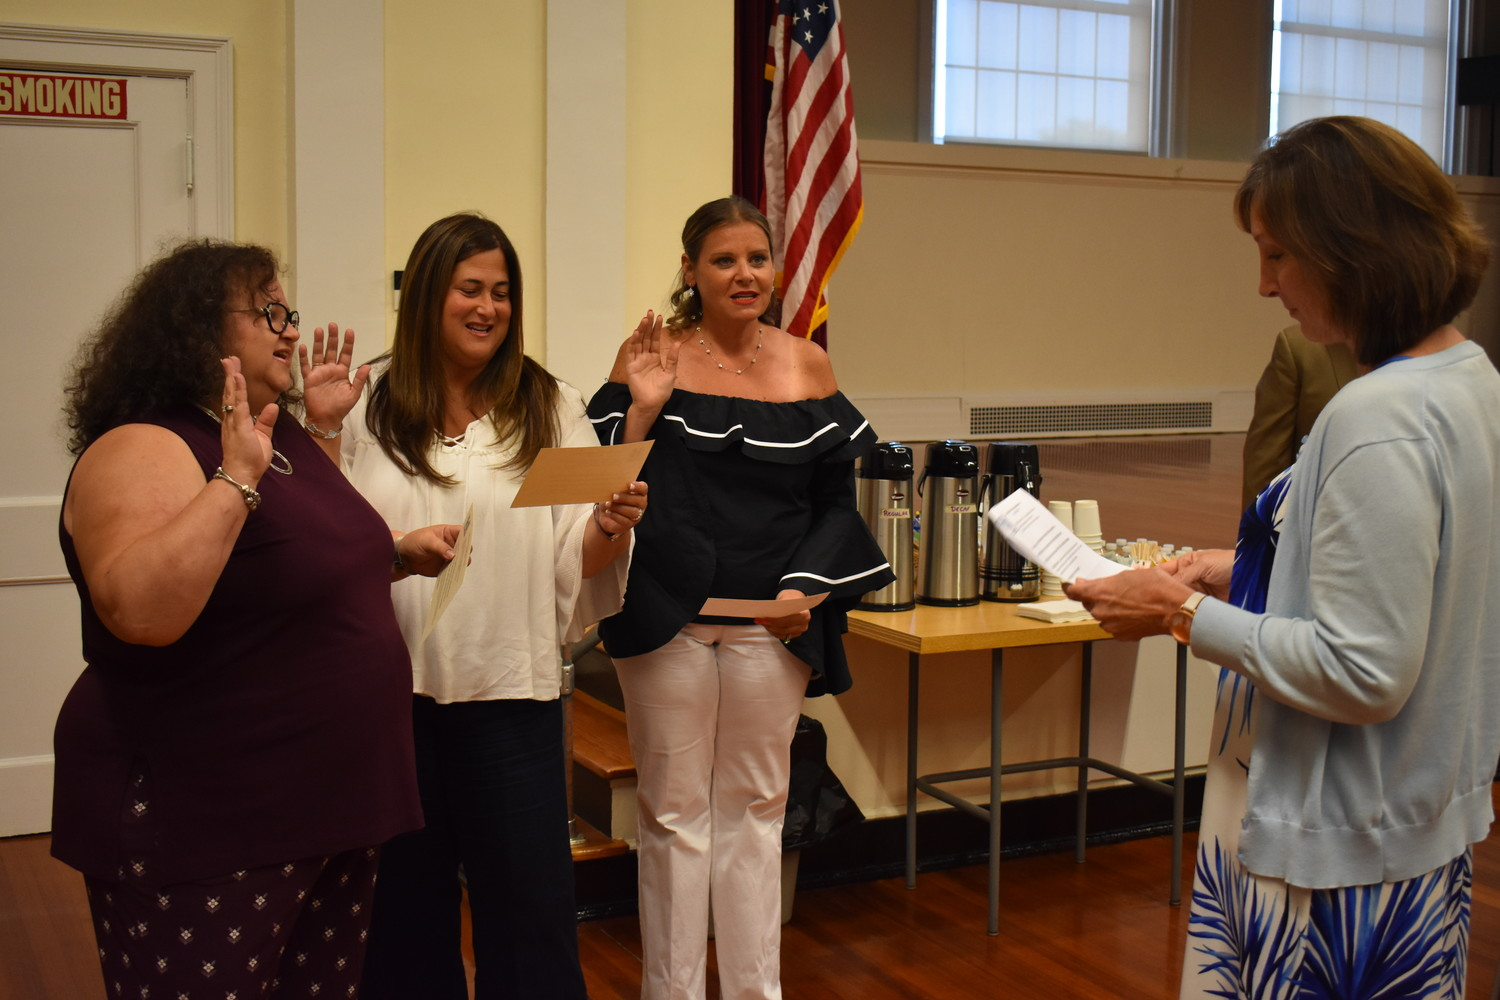 District clerk, Barbara Randazzo, administered the oath of office to the trustees, from left, Melissa Gates, Judy Menashe and Debi Sheinin.